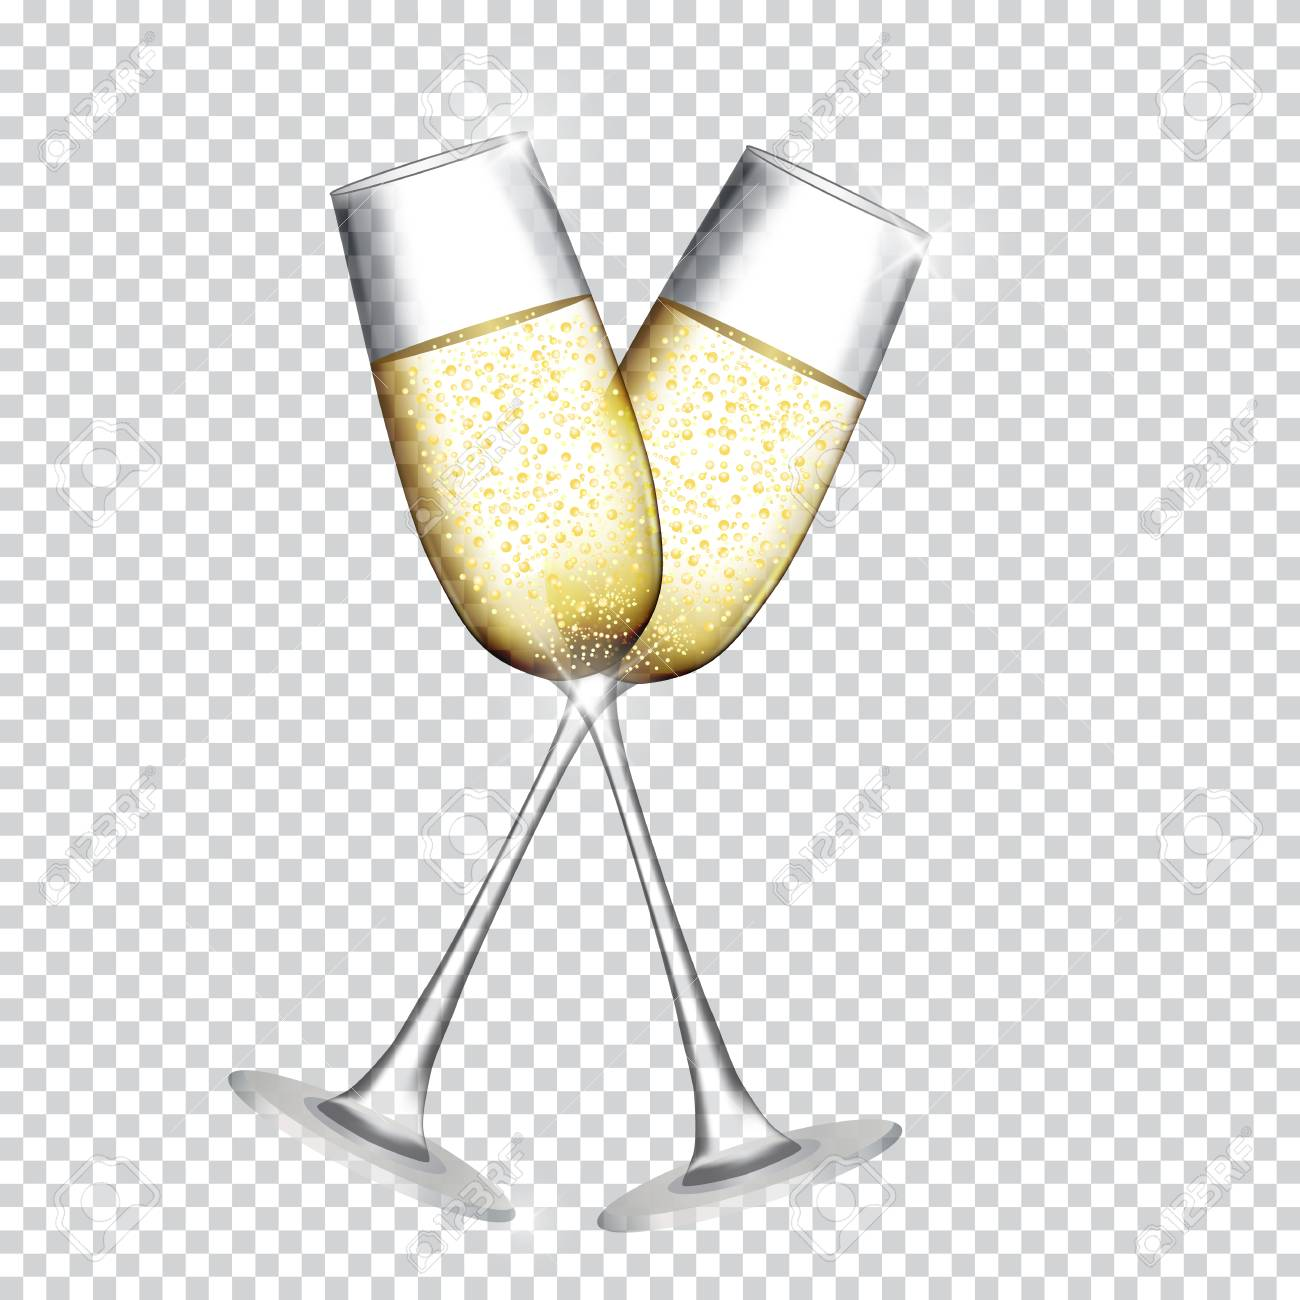 Two Glass of Champagne square patterned background. Vector Illustration.